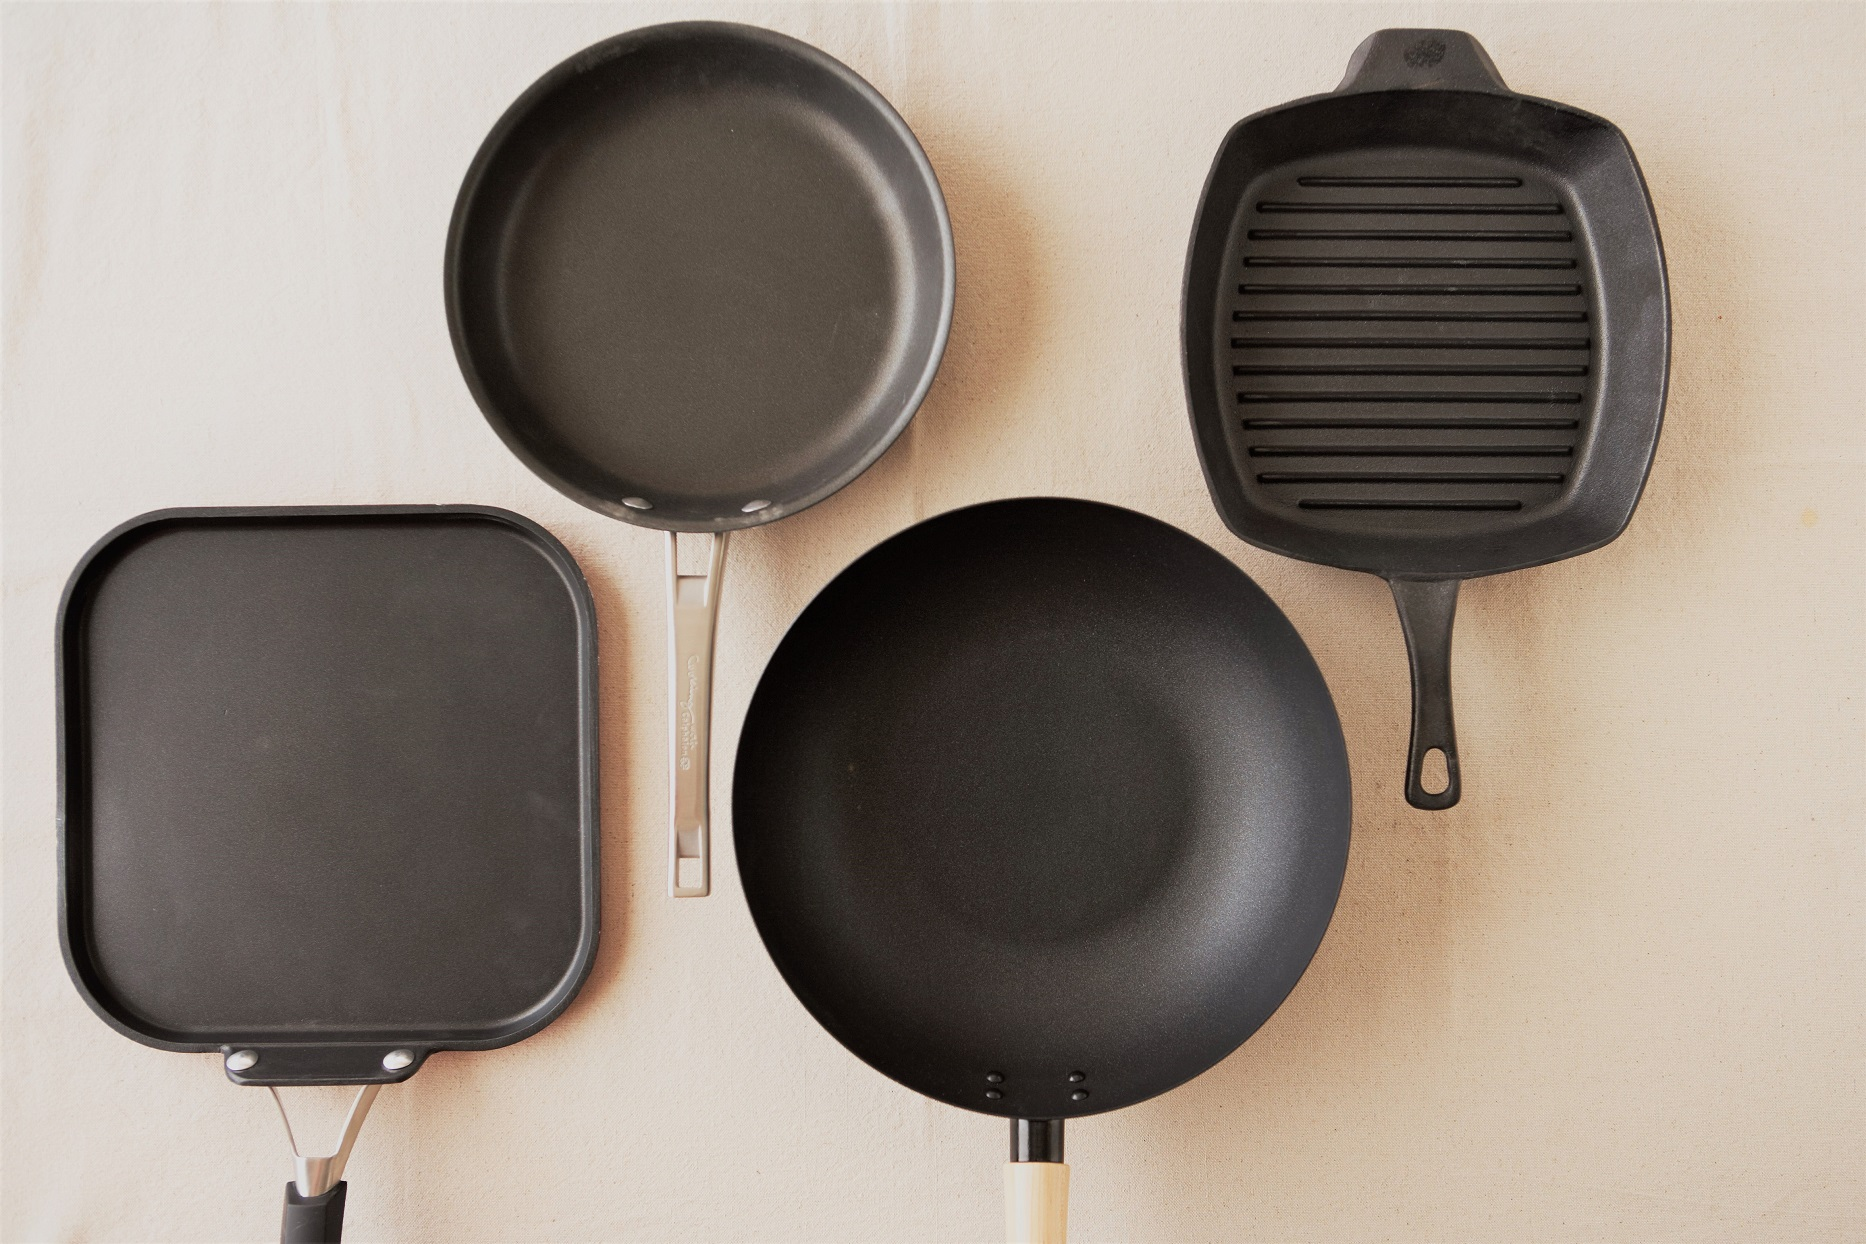 FDA Confirms Toxic Nonstick Cookware Chemicals Are Contaminating Our Food and Water Supply